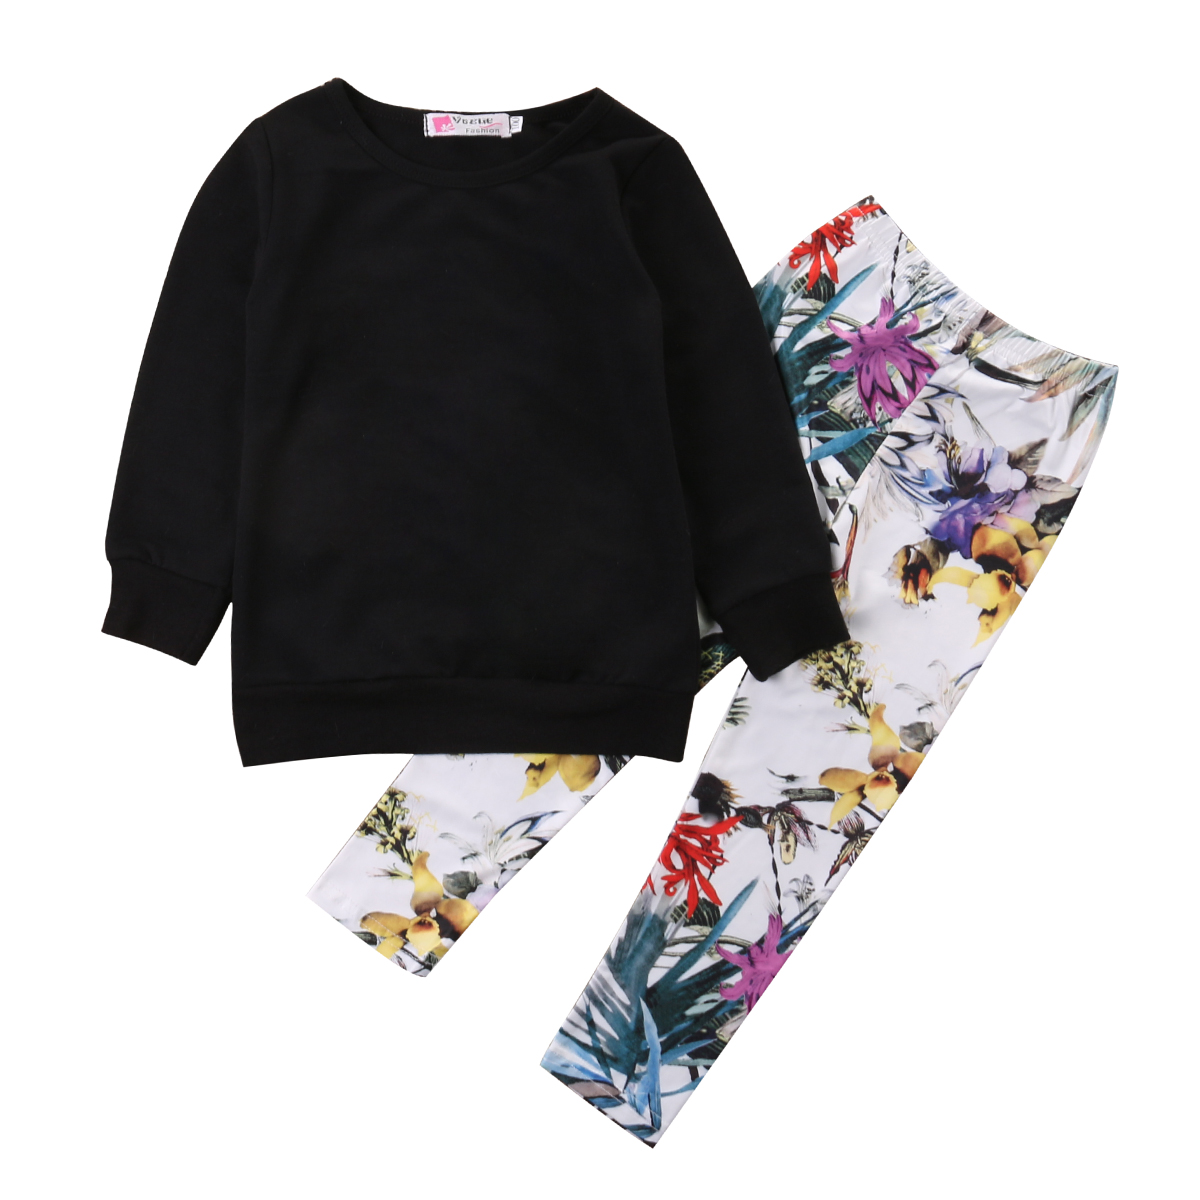 Toddler Kids Baby Girls Clothes T-shirt Tops + Floral Leggings Pants 2PCS Outfits Set